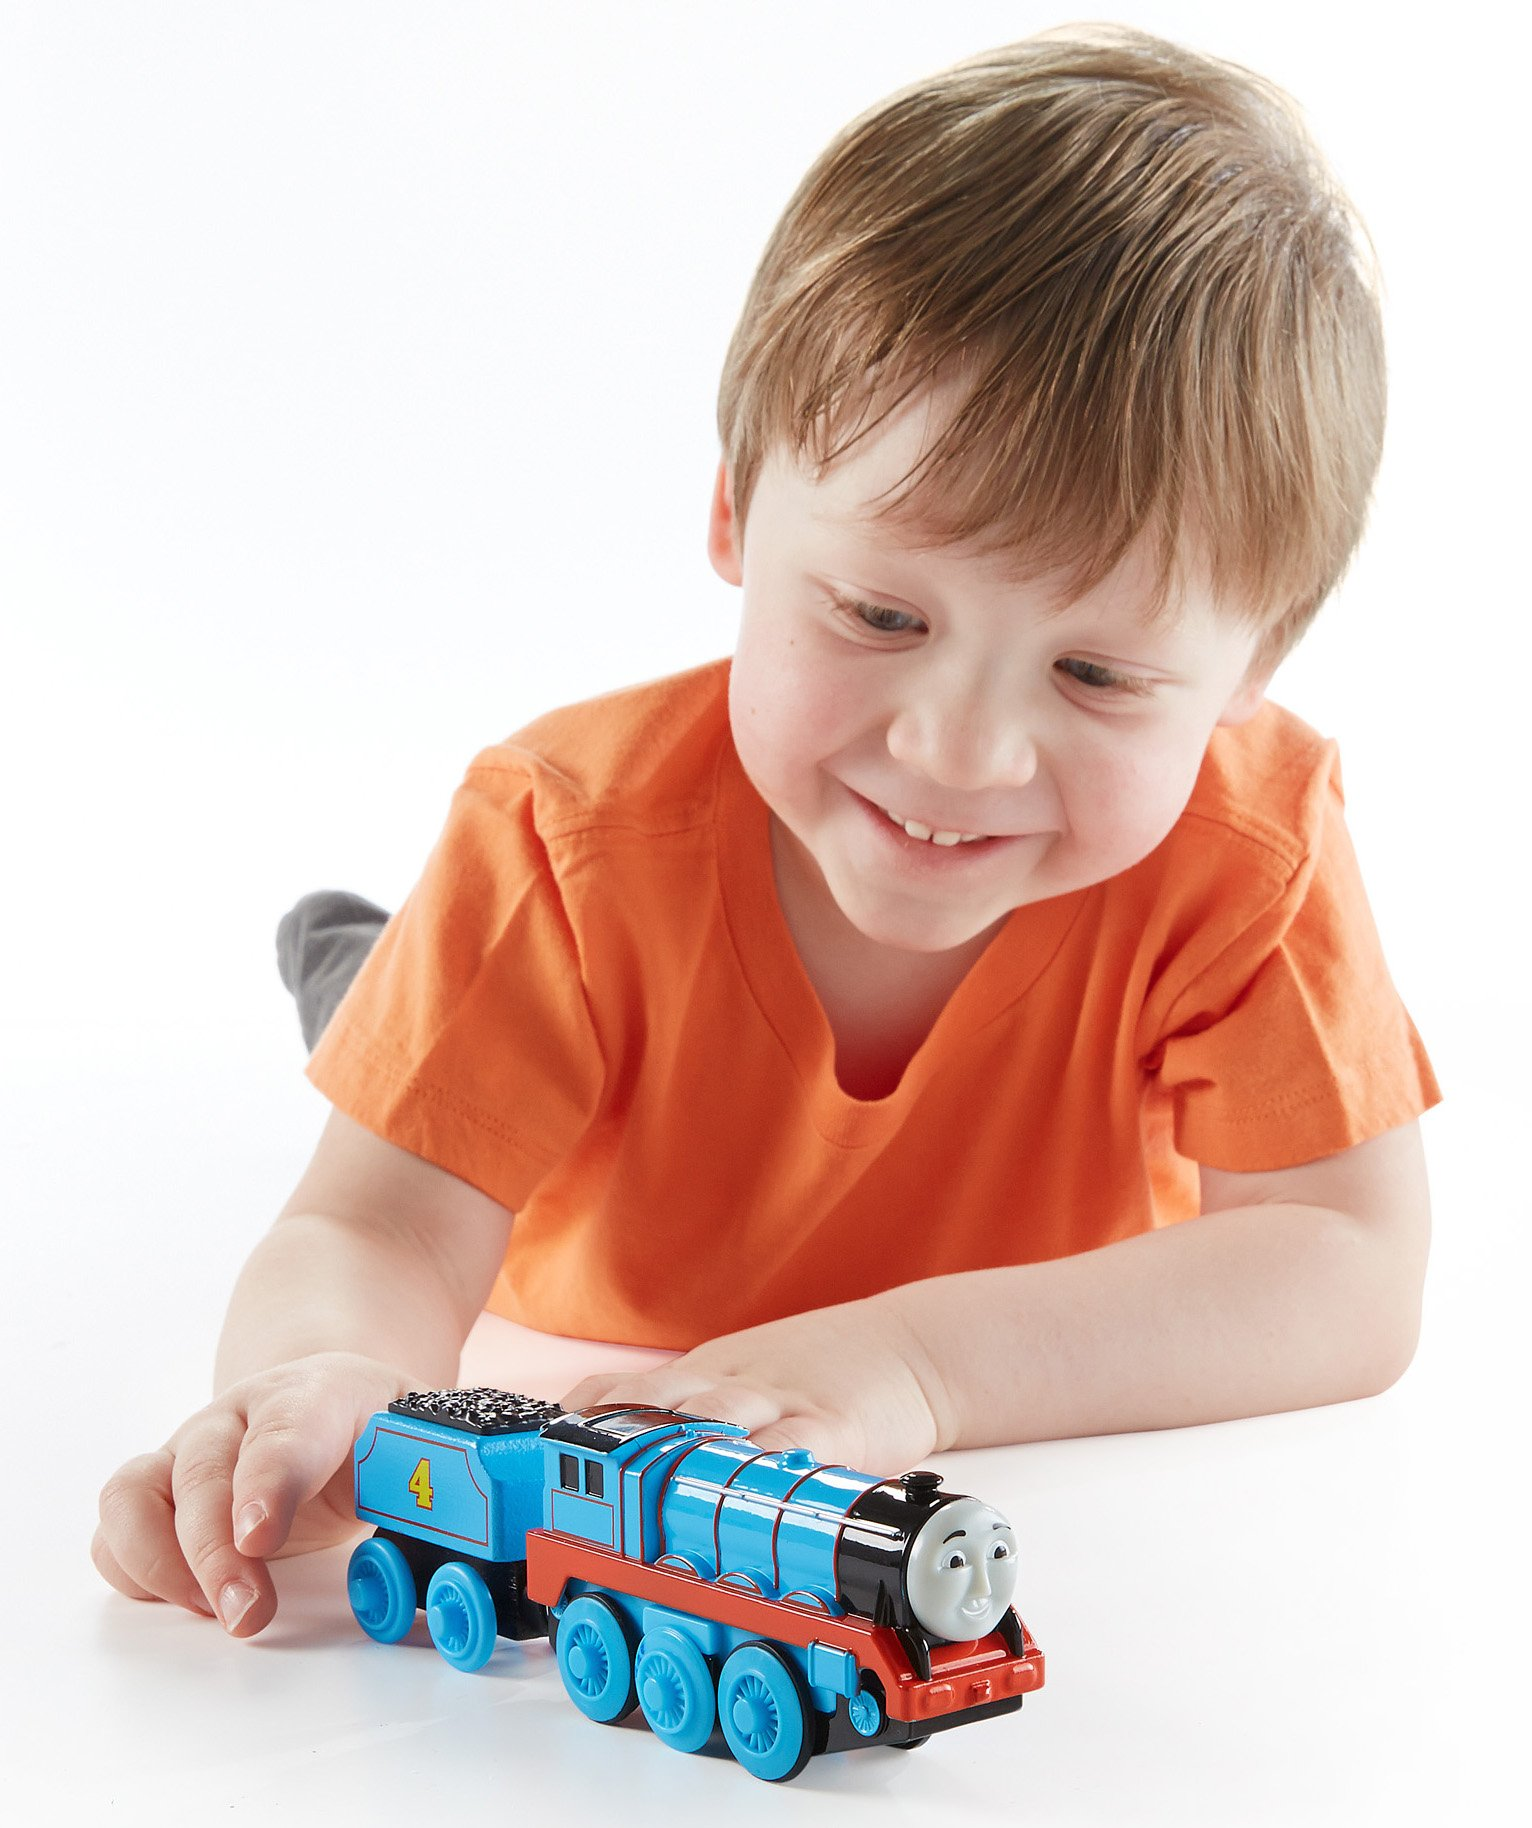 Fisher-Price Thomas & Friends Wooden Railway, Gordon Train - Battery Operated